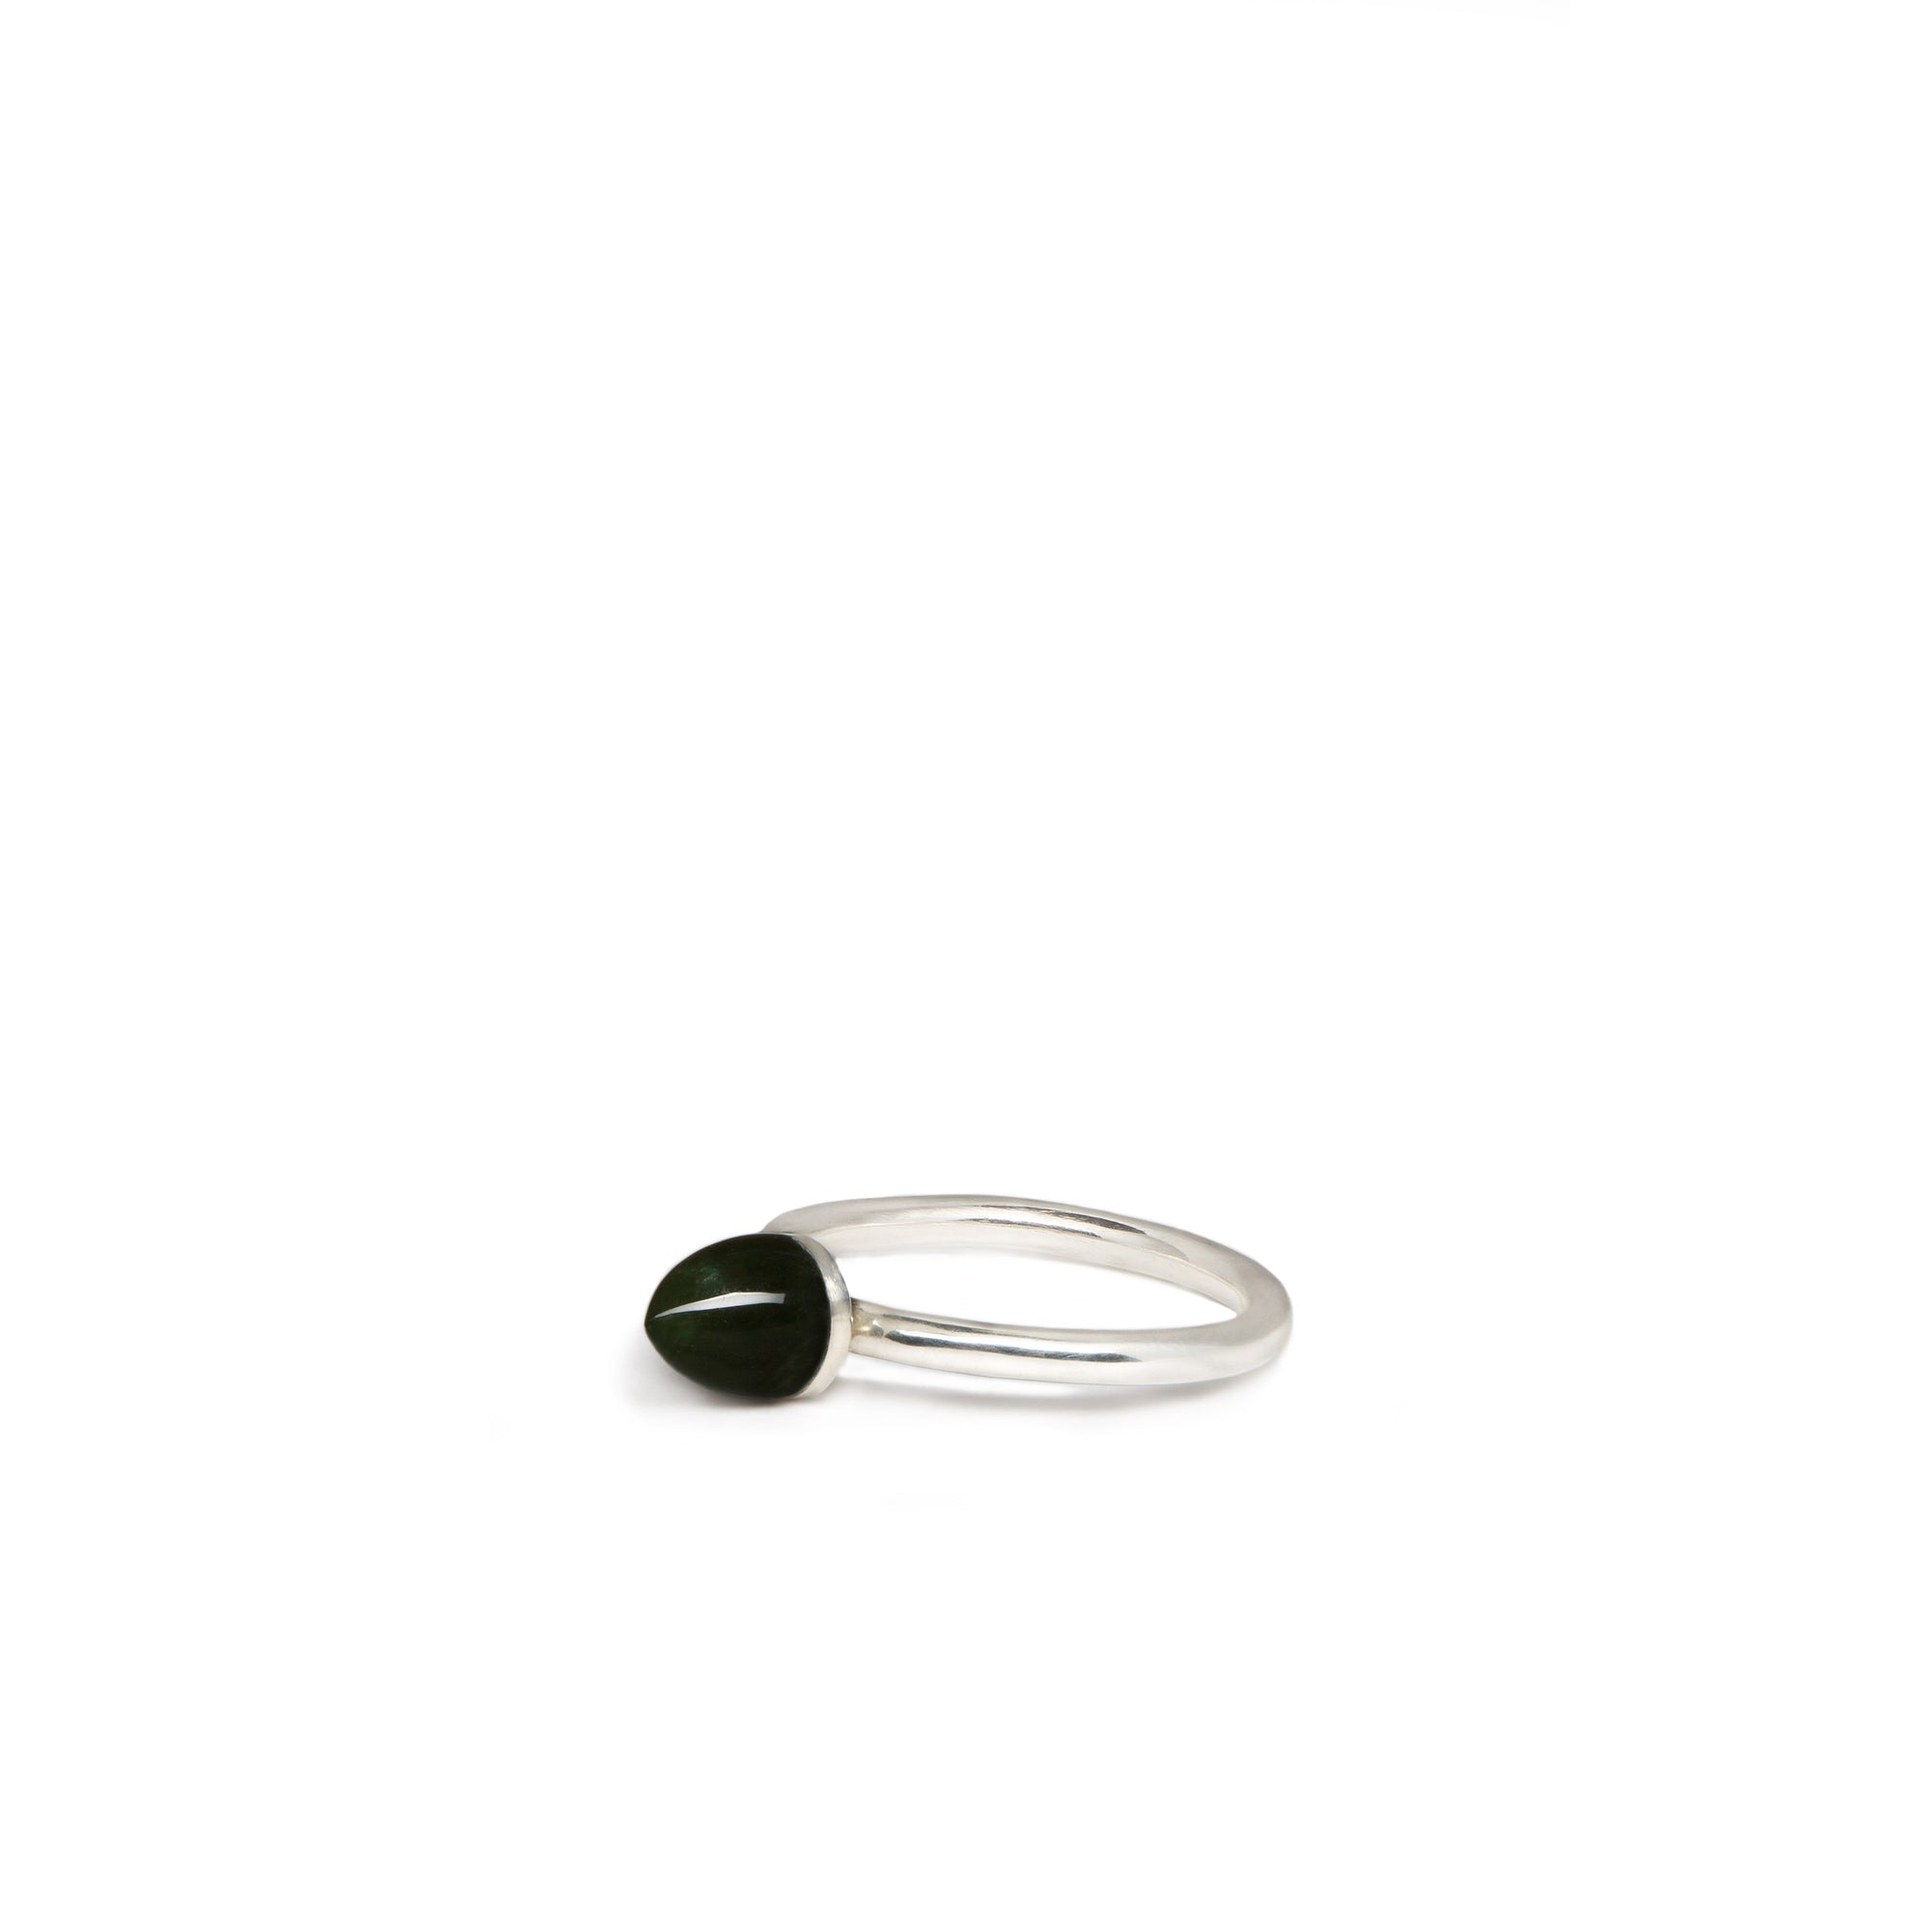 New Zealand Jade Domed Ring - Size J.5